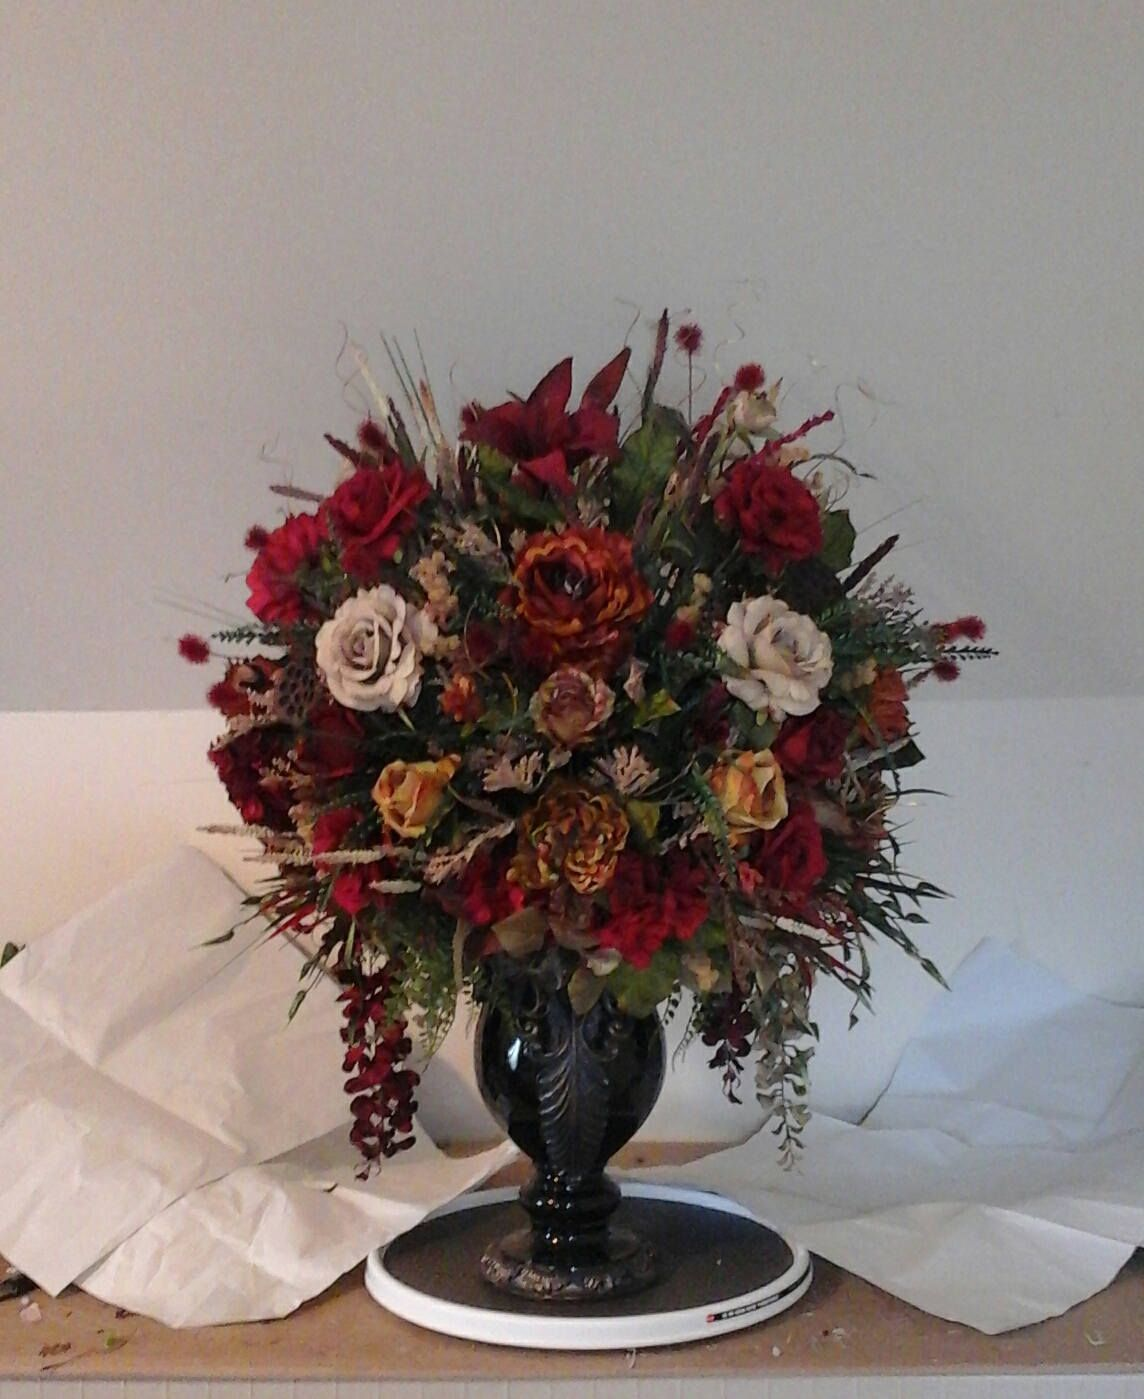 Floral Arrangement XL Centerpiece SHIPPING INCLUDED Elegant Luxury Modern Silk CenterpiecesFloral ArrangementsDining Room